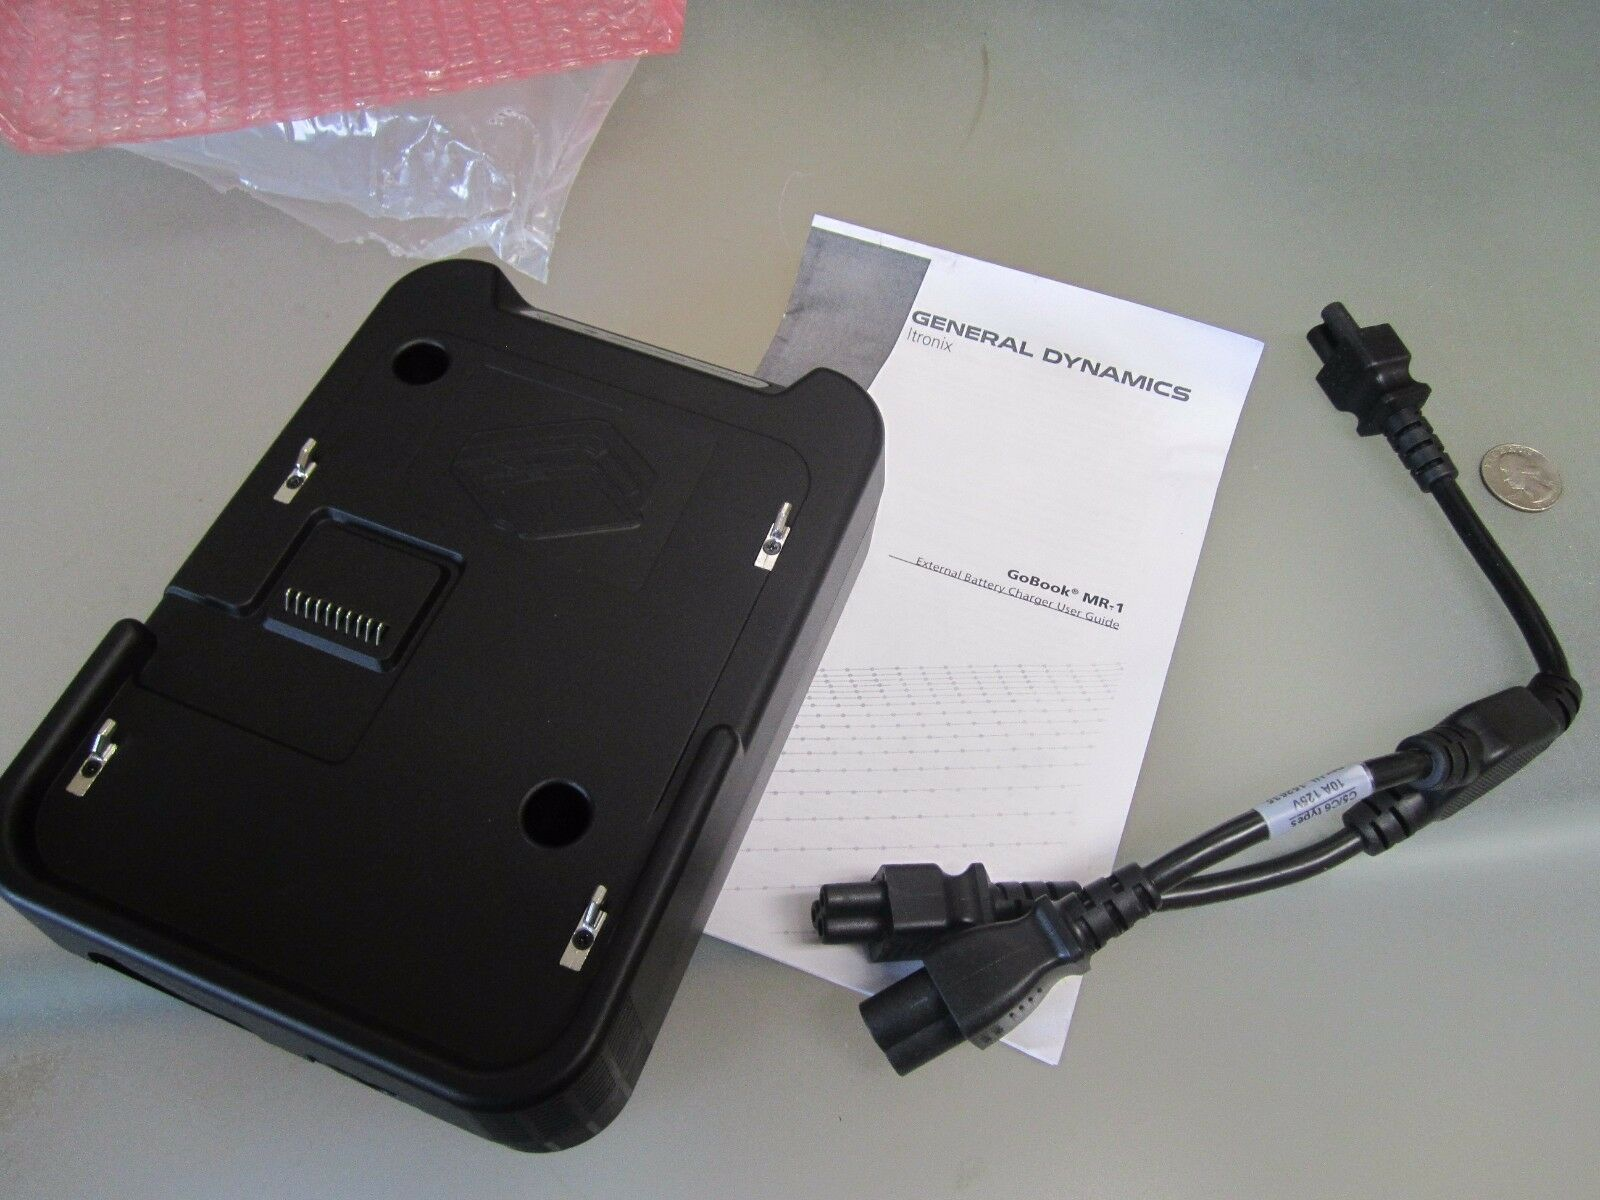 """AC Power Adapter Charger For Itronix Go-Book XR-1 IX270 12.1/"""" Laptop PC GoBook"""